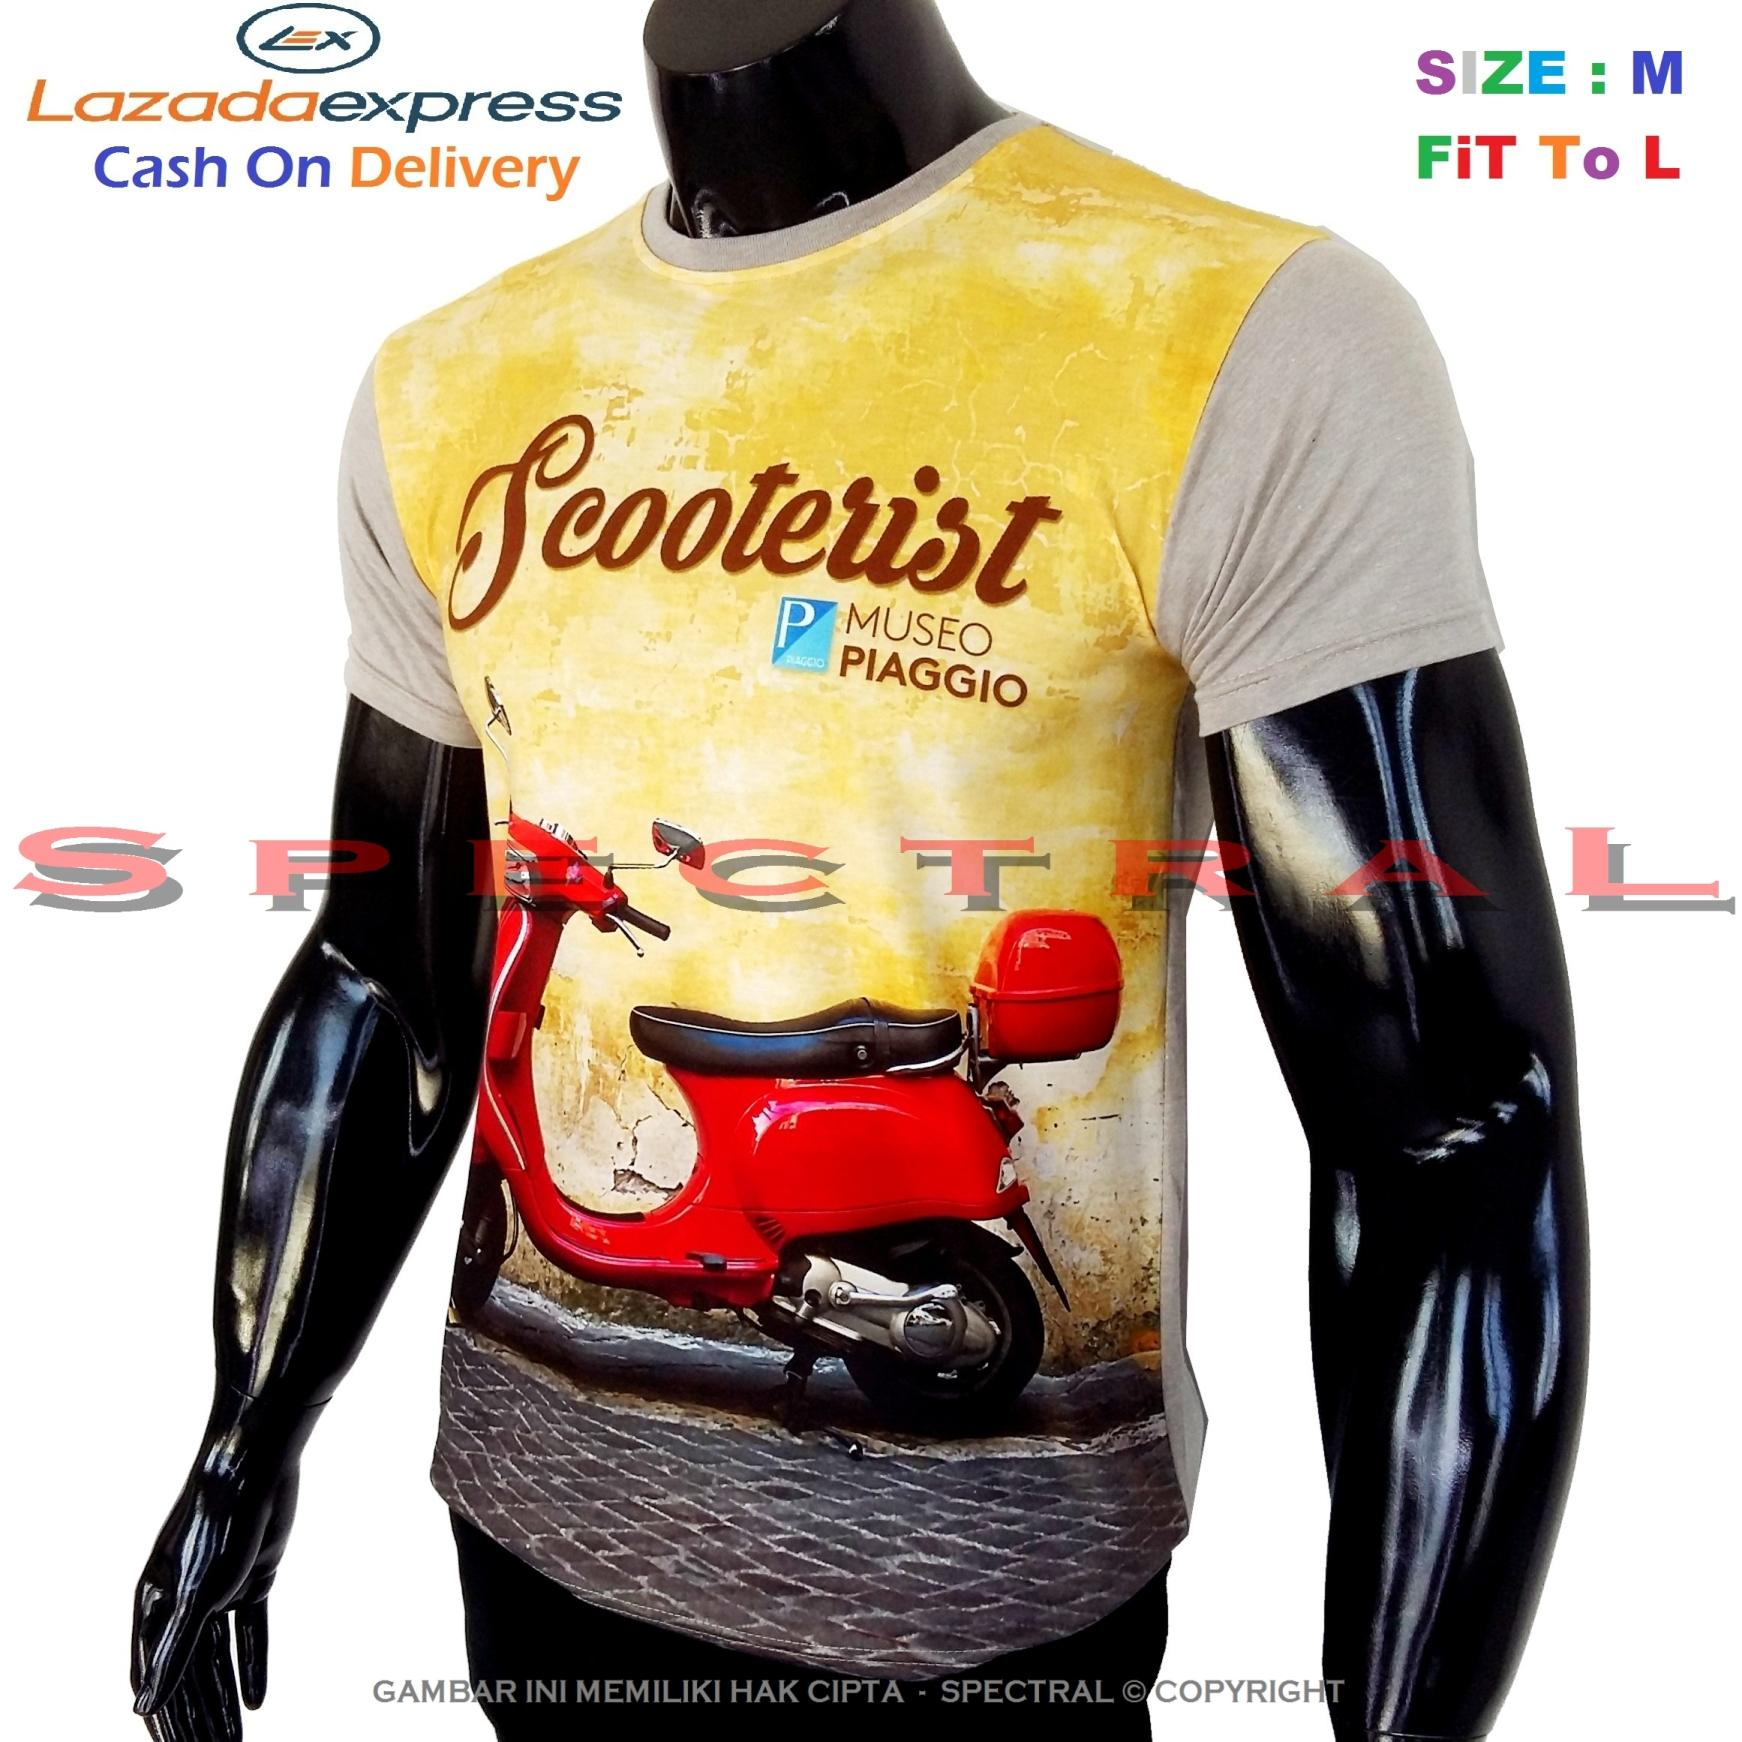 Spectral – 3D SCOOTER Kualitas HD Printing Size M Fit To L Soft Rayon Viscose Kaos Distro Fashion